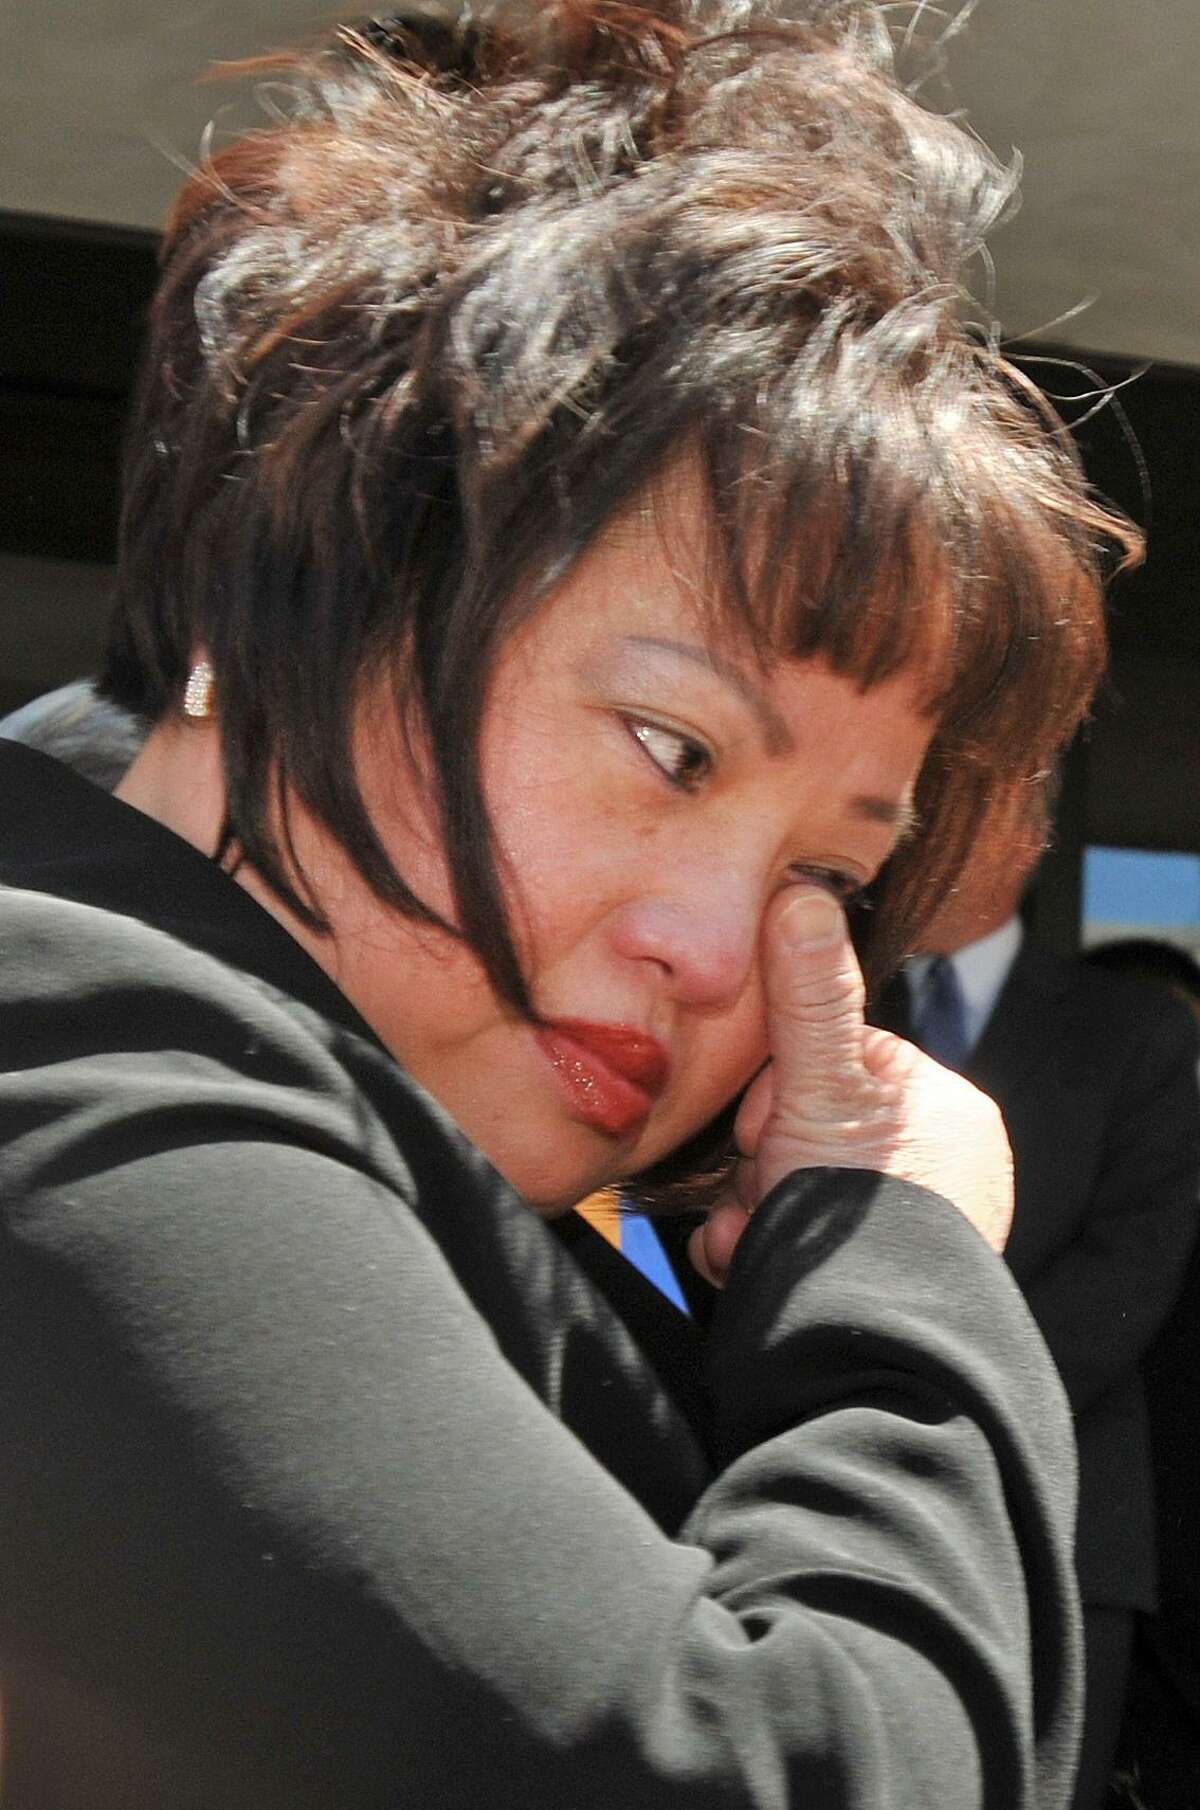 New Haven--Vivian Van Le outside New Haven Superior Court Friday afternoon after the sentencing of Raymond Clark Jr. for the murder of her daughter Annie Le. Photo by Brad Horrigan/New Haven Register-06.03.11.